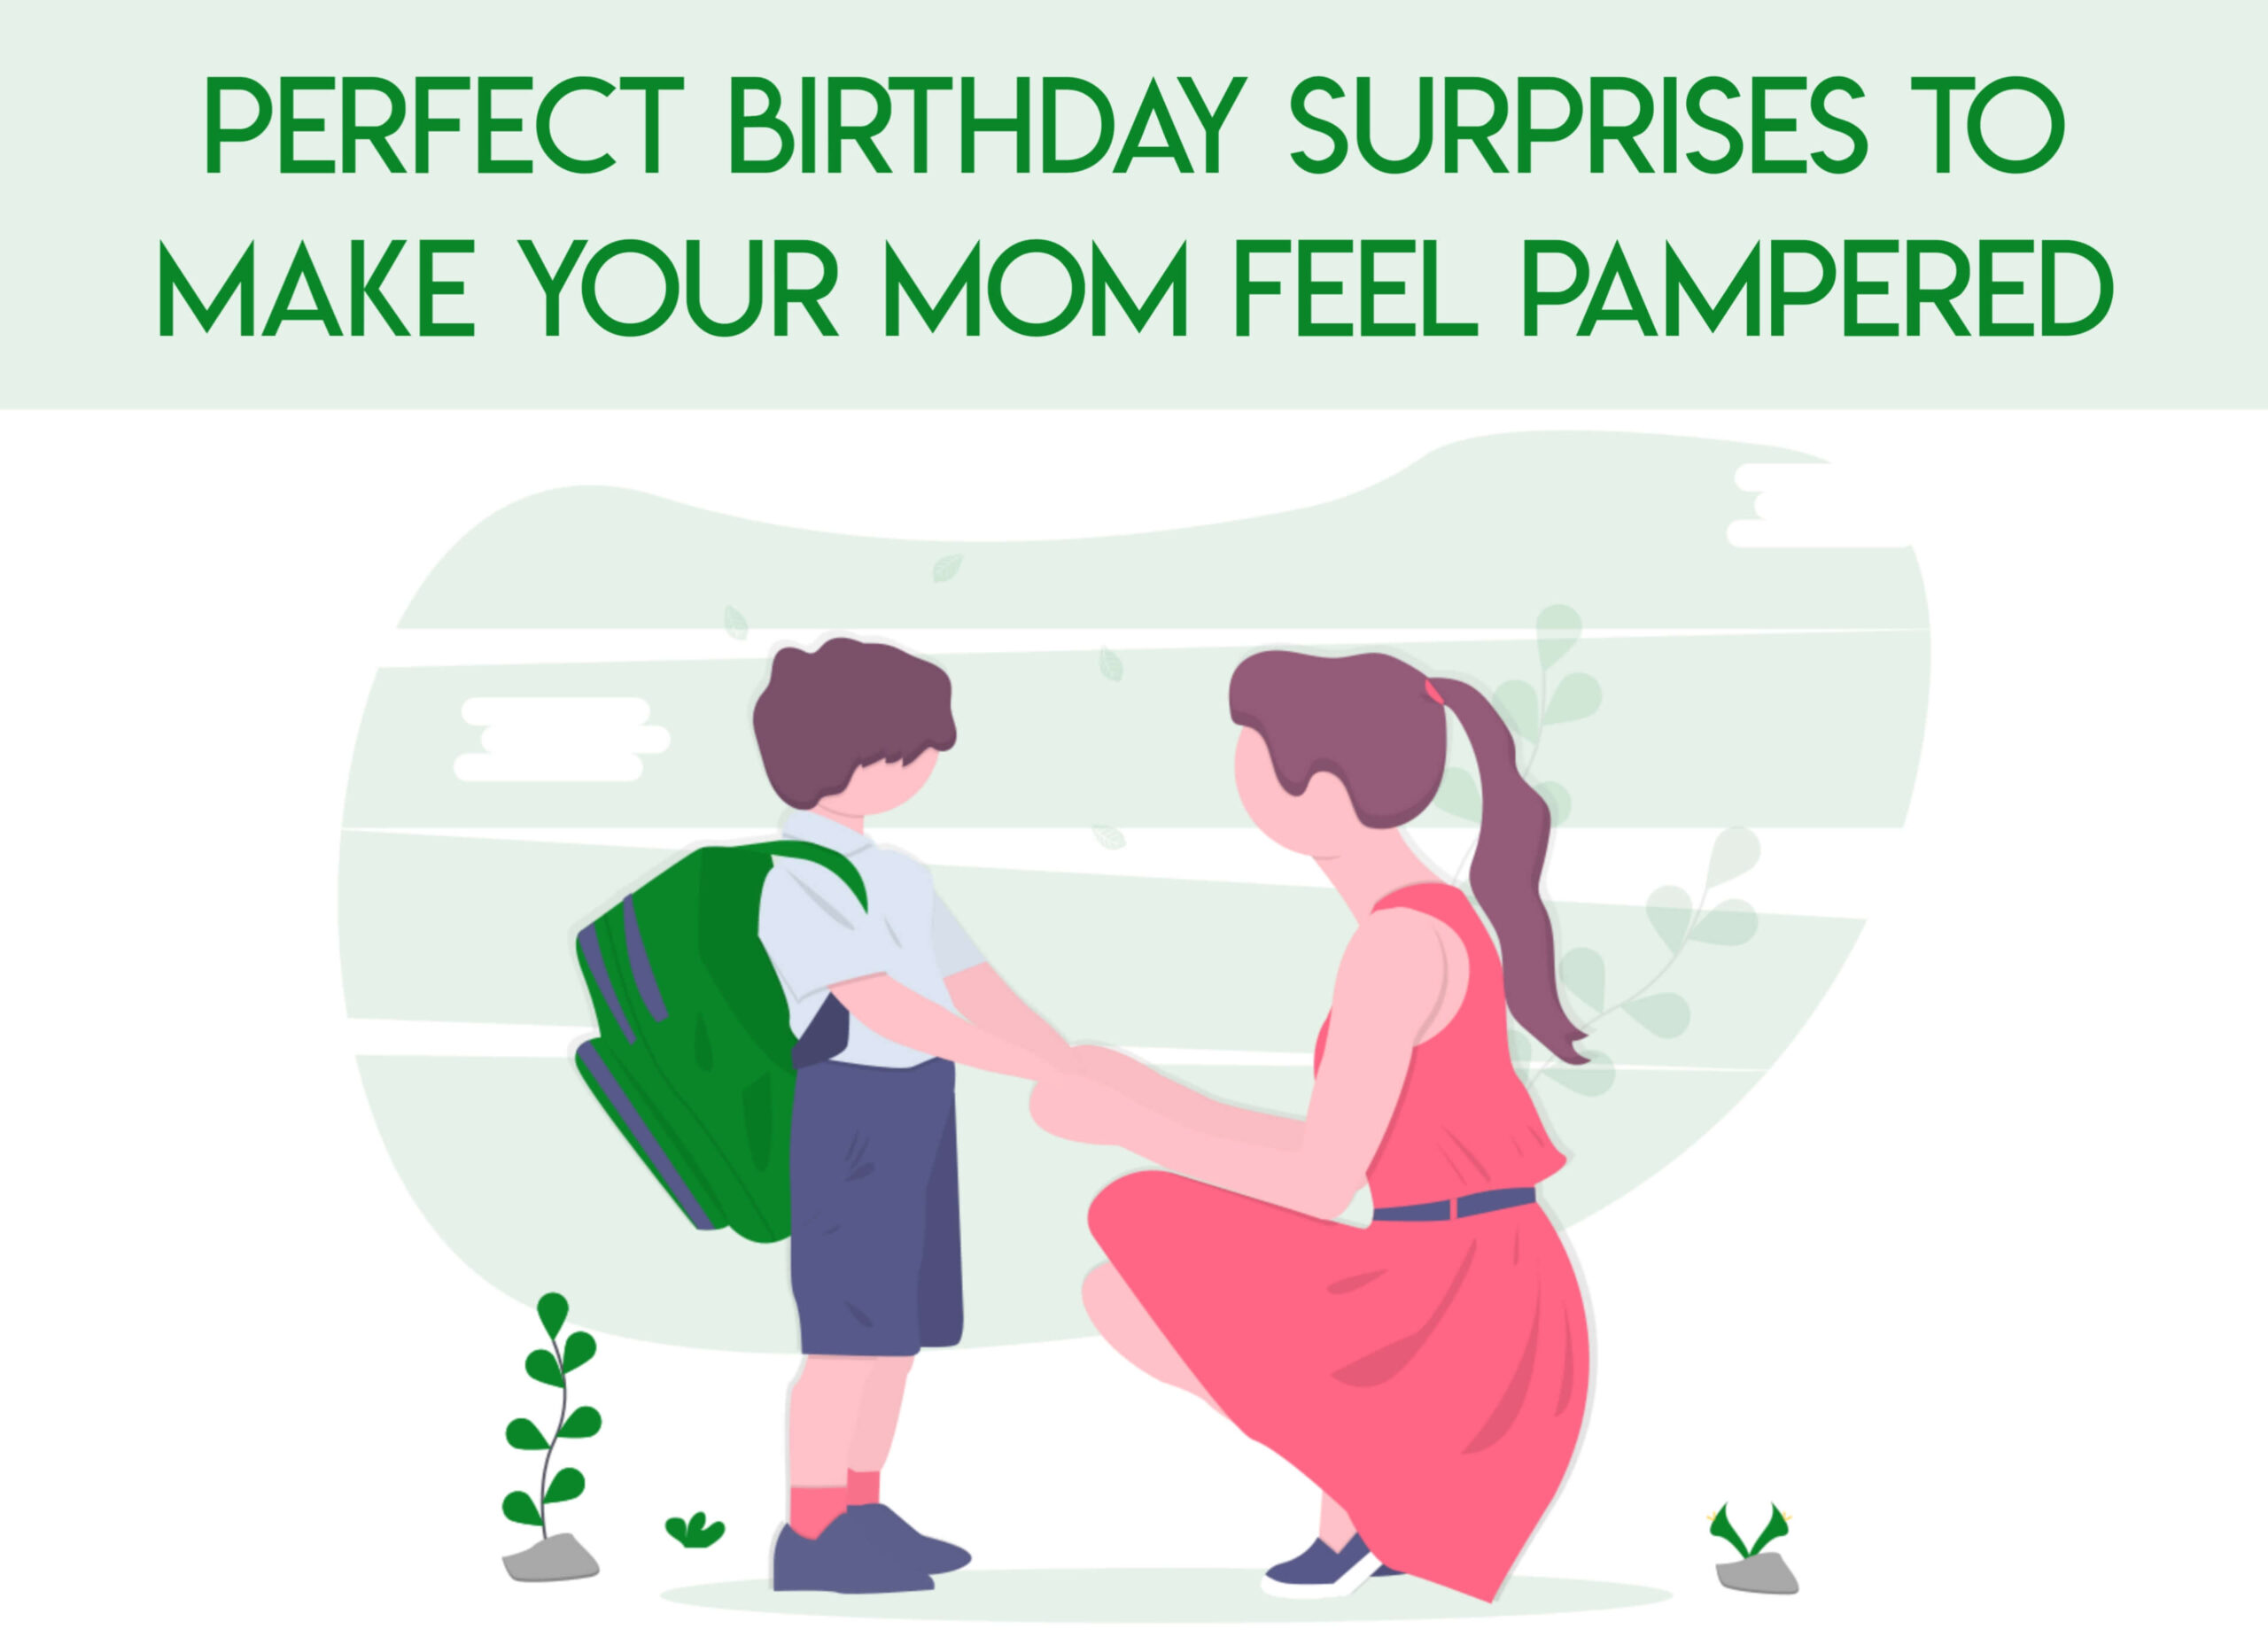 birthday surprises for mom